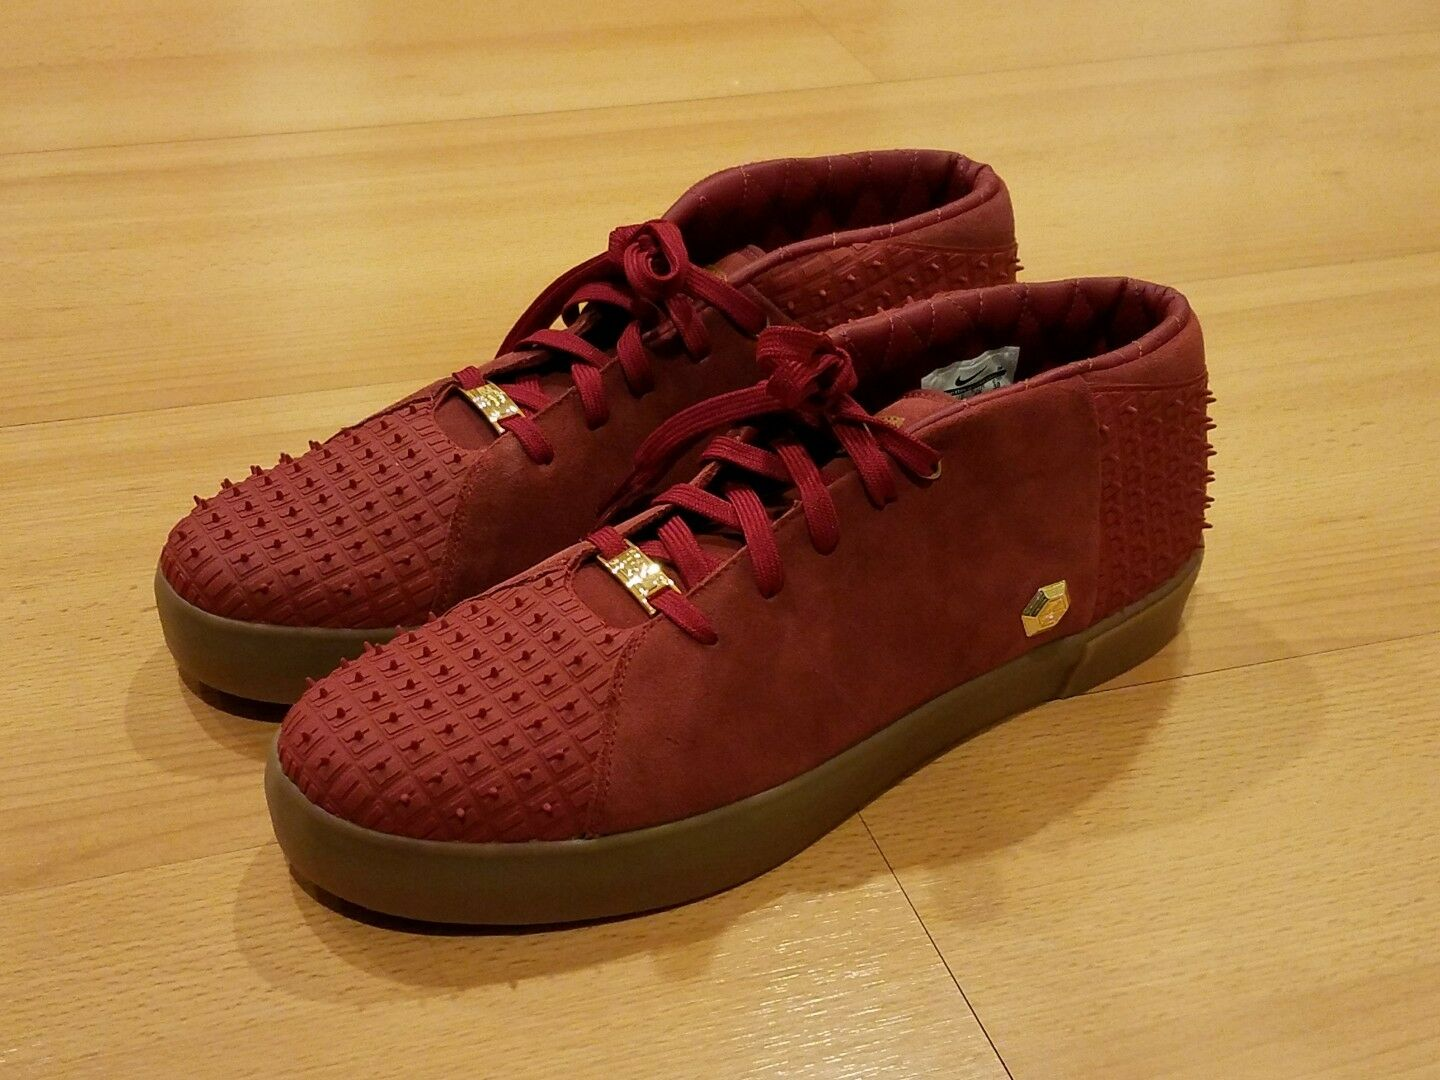 NIKE LEBRON JAMES XIII LIFESTYLE TEAM RED SUEDE SNEAKERS 806396 600 MENS SZ 12